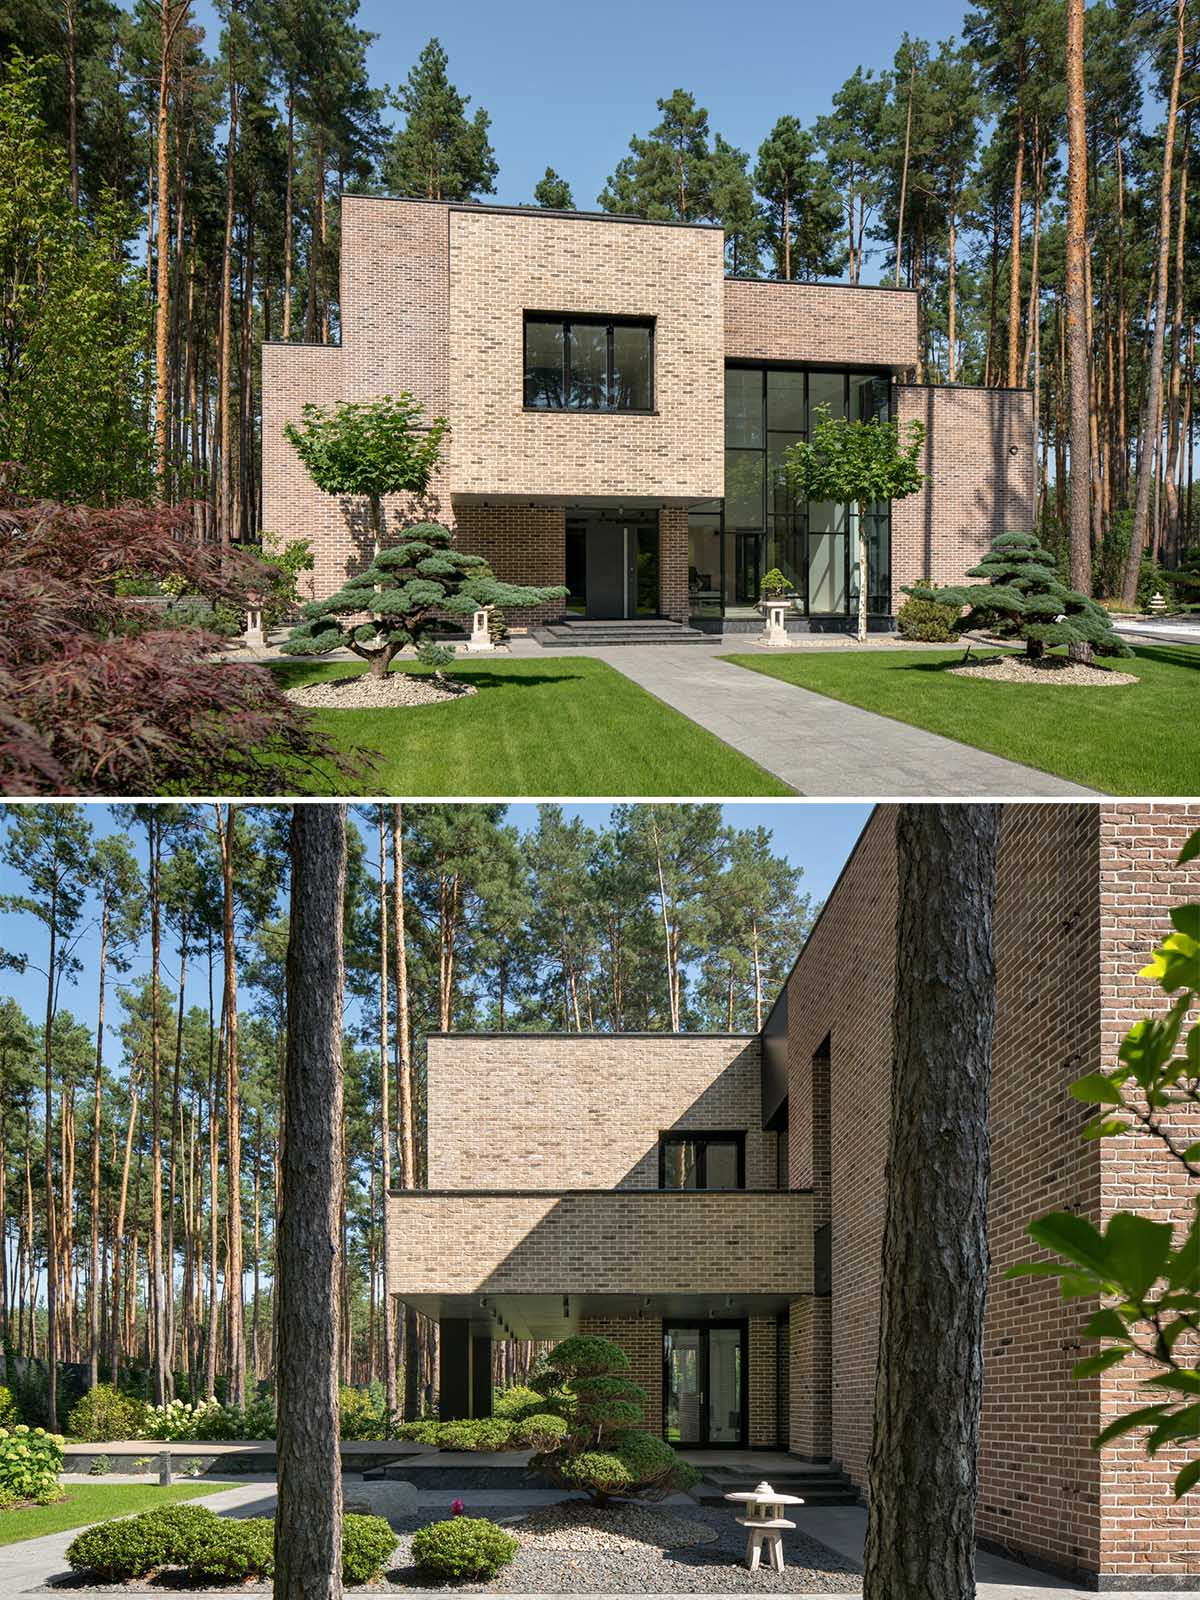 Surrounded by forest, the 'BST House', which also has a guest house, features a facade of hand-formed brick.